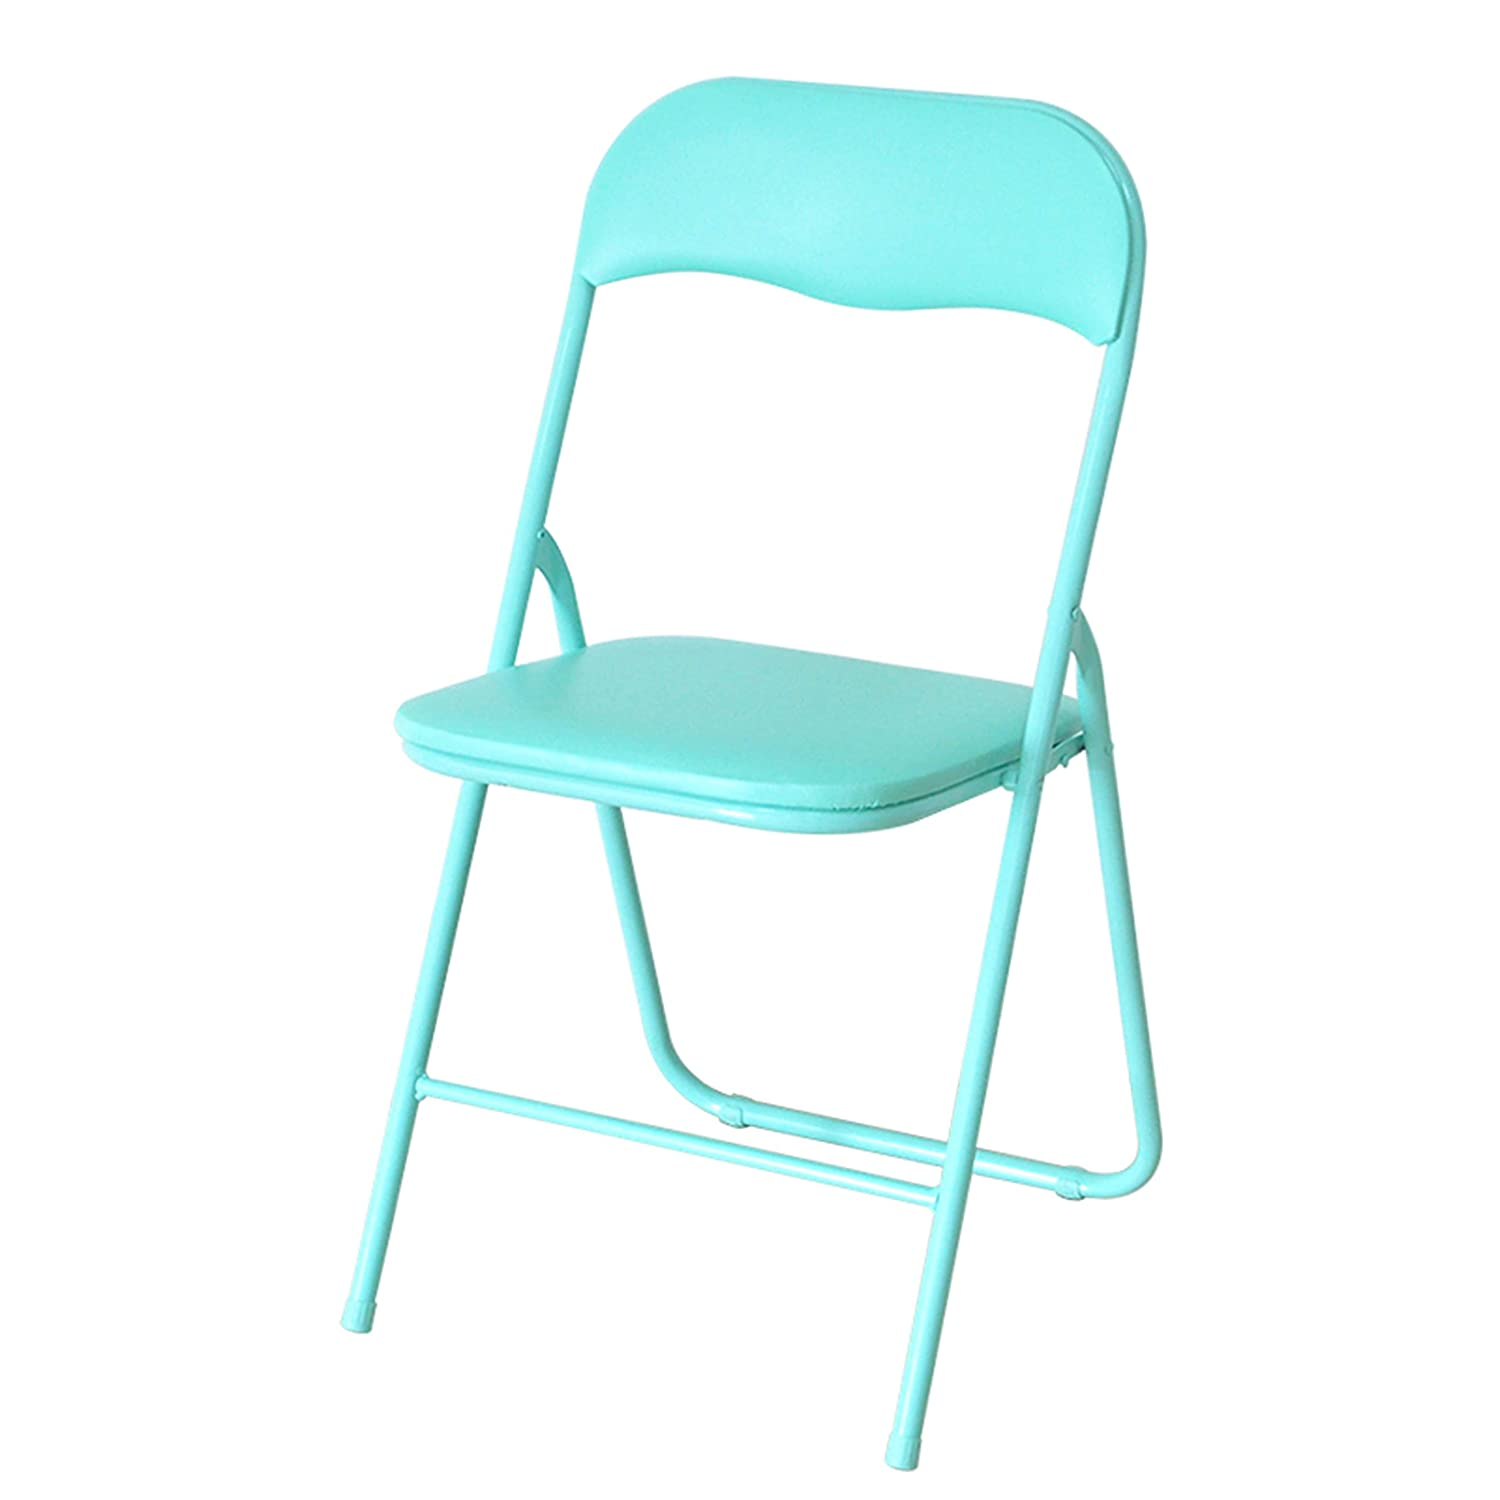 E Fold Chair, Portable Backrest Chair Plastic Household Dining Chair Office Chair Conference Chair Training Chair Student Chair Metal Chair,a